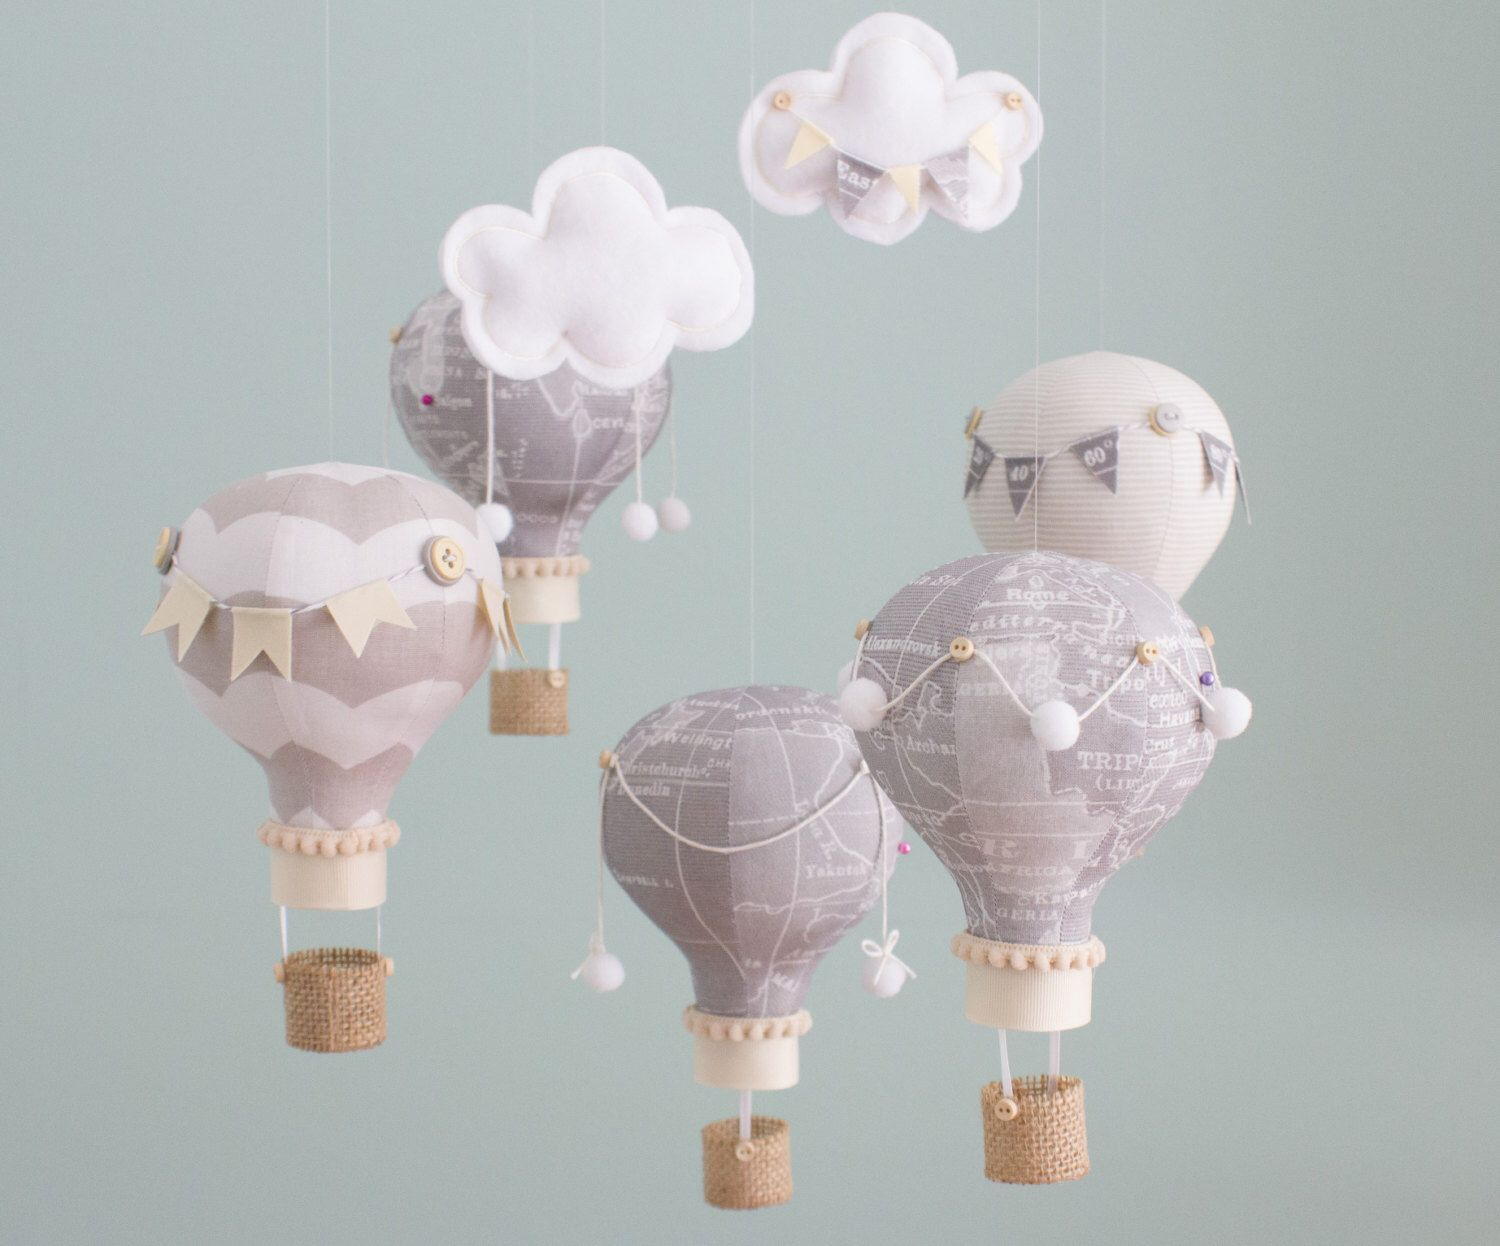 Heirloom baby mobile hot air balloon baby mobile map fabric heirloom baby mobile for a travel theme nursery in old world map fabric with coordinating grey and khaki fabrics the map balloons can include a gumiabroncs Images